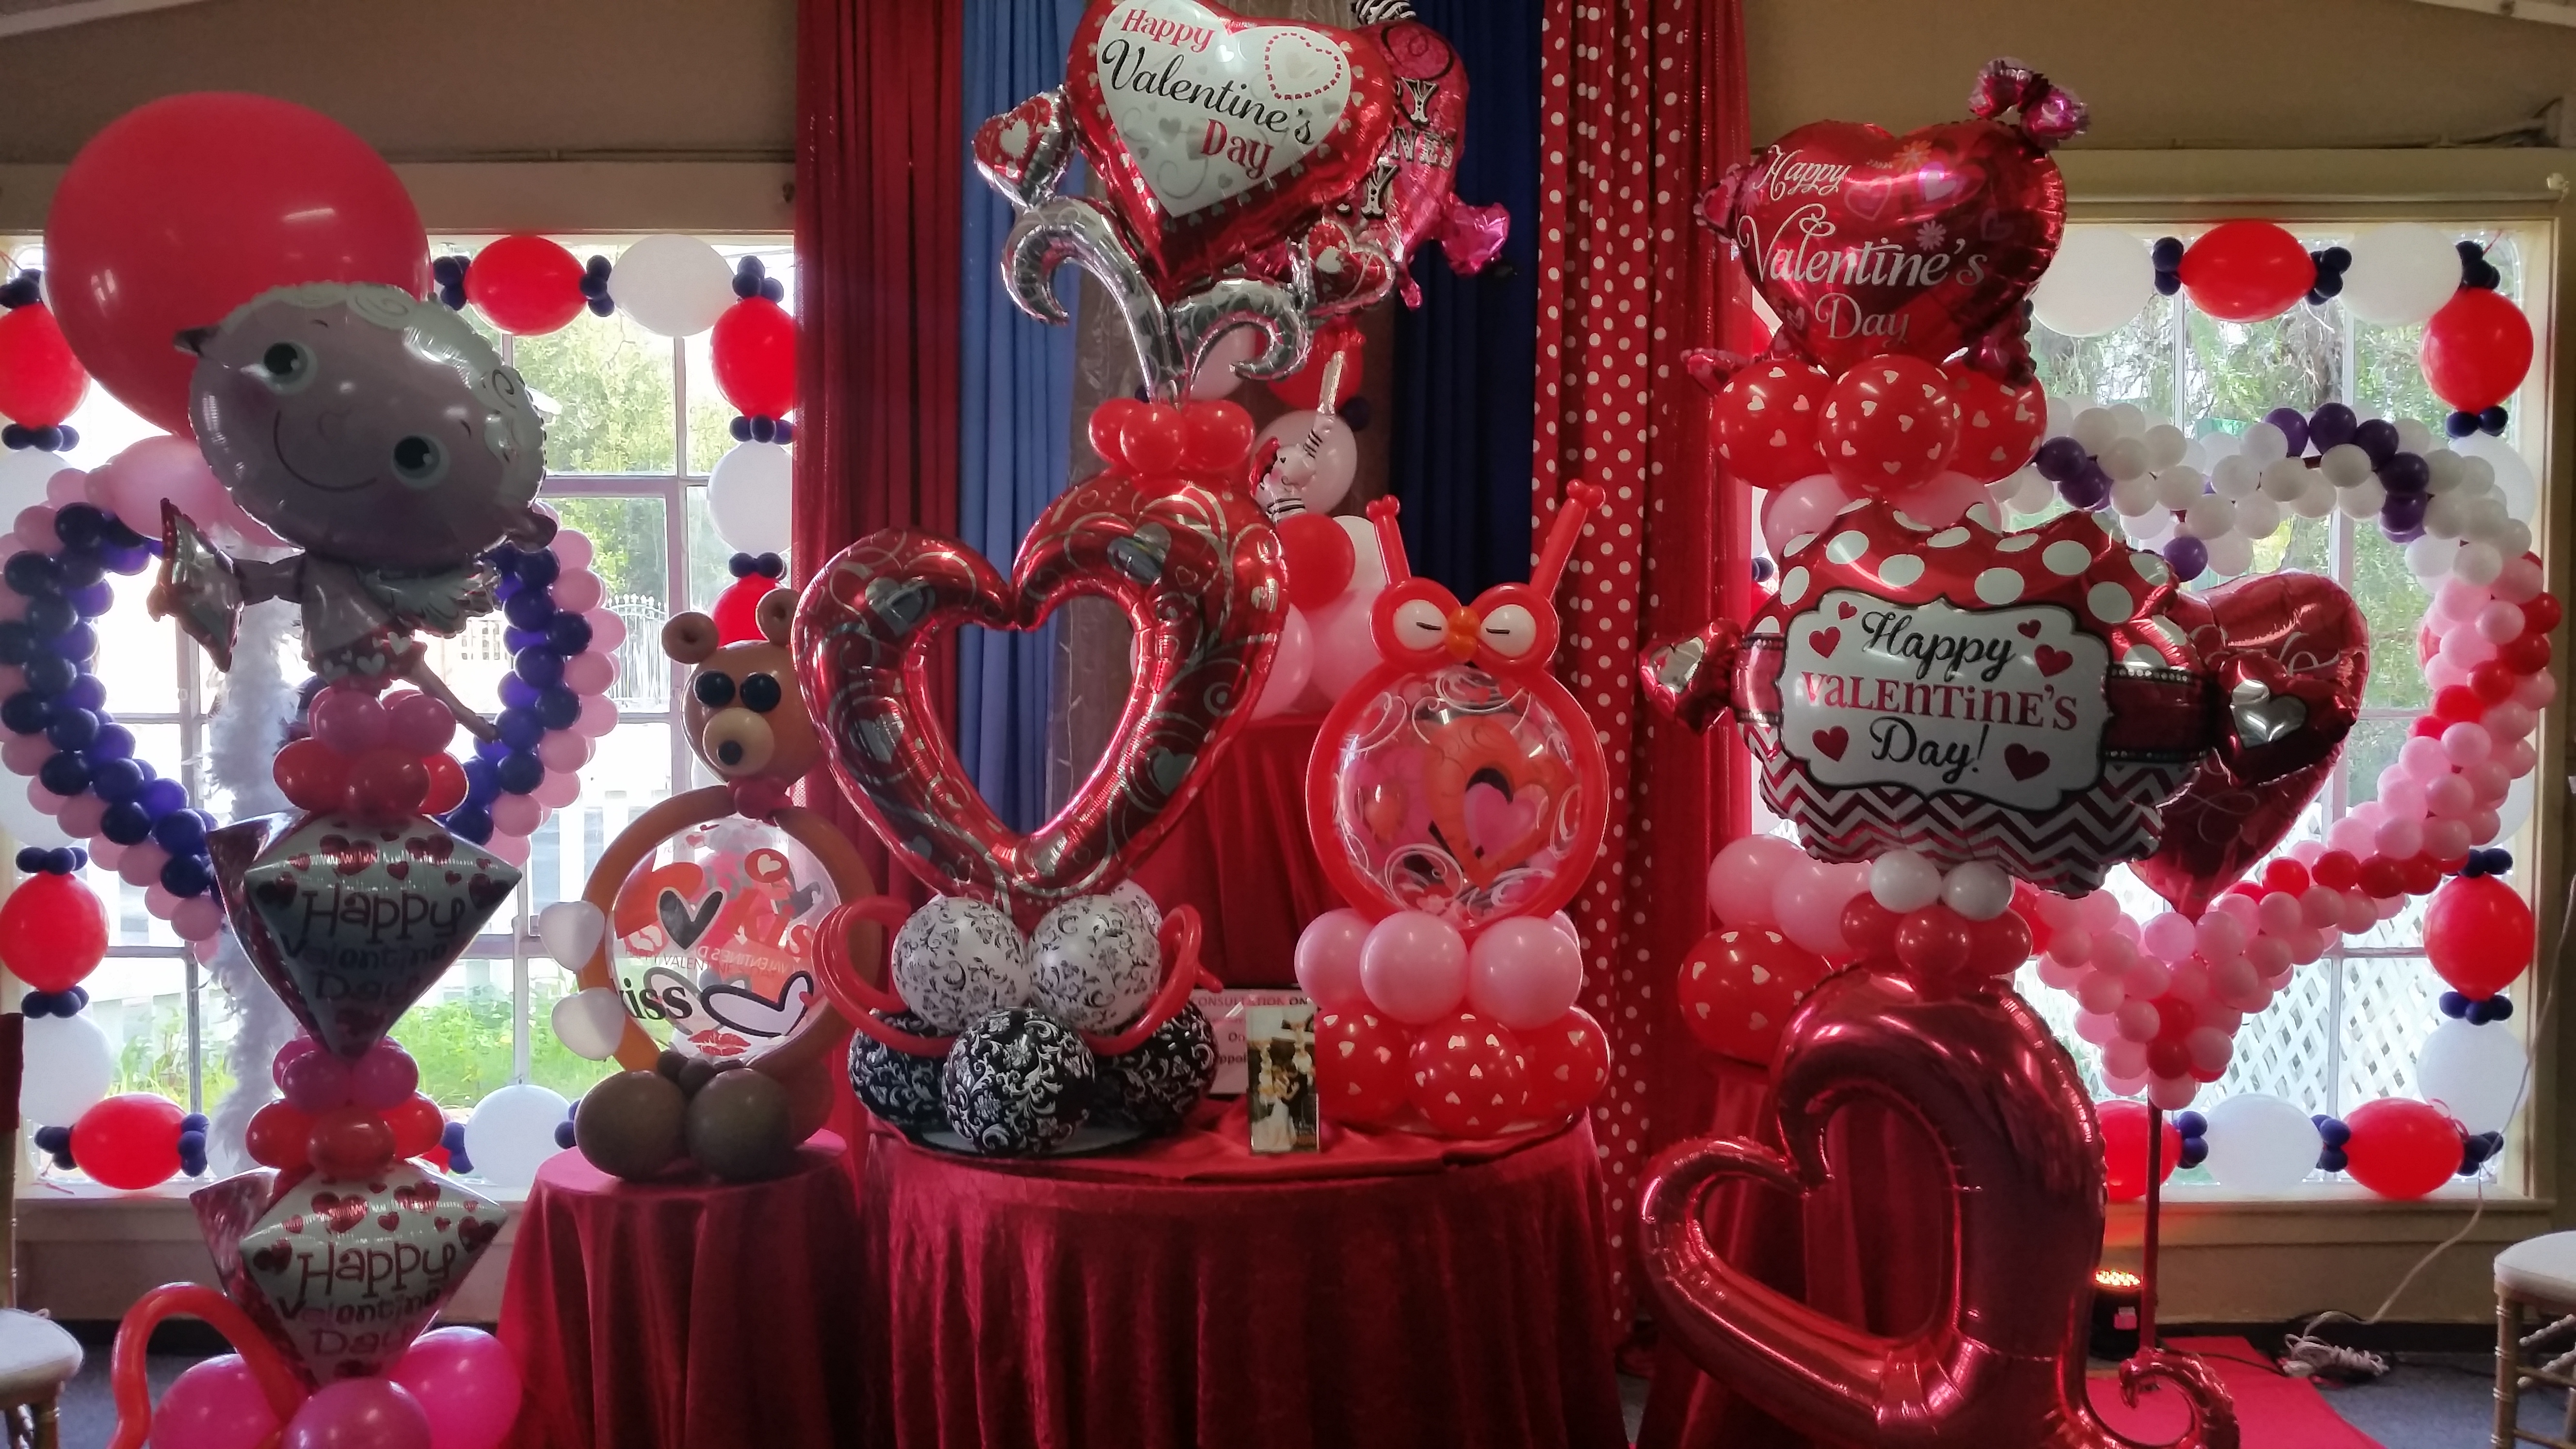 Party Fiesta Balloon Decor Shares The High Cost Of Love